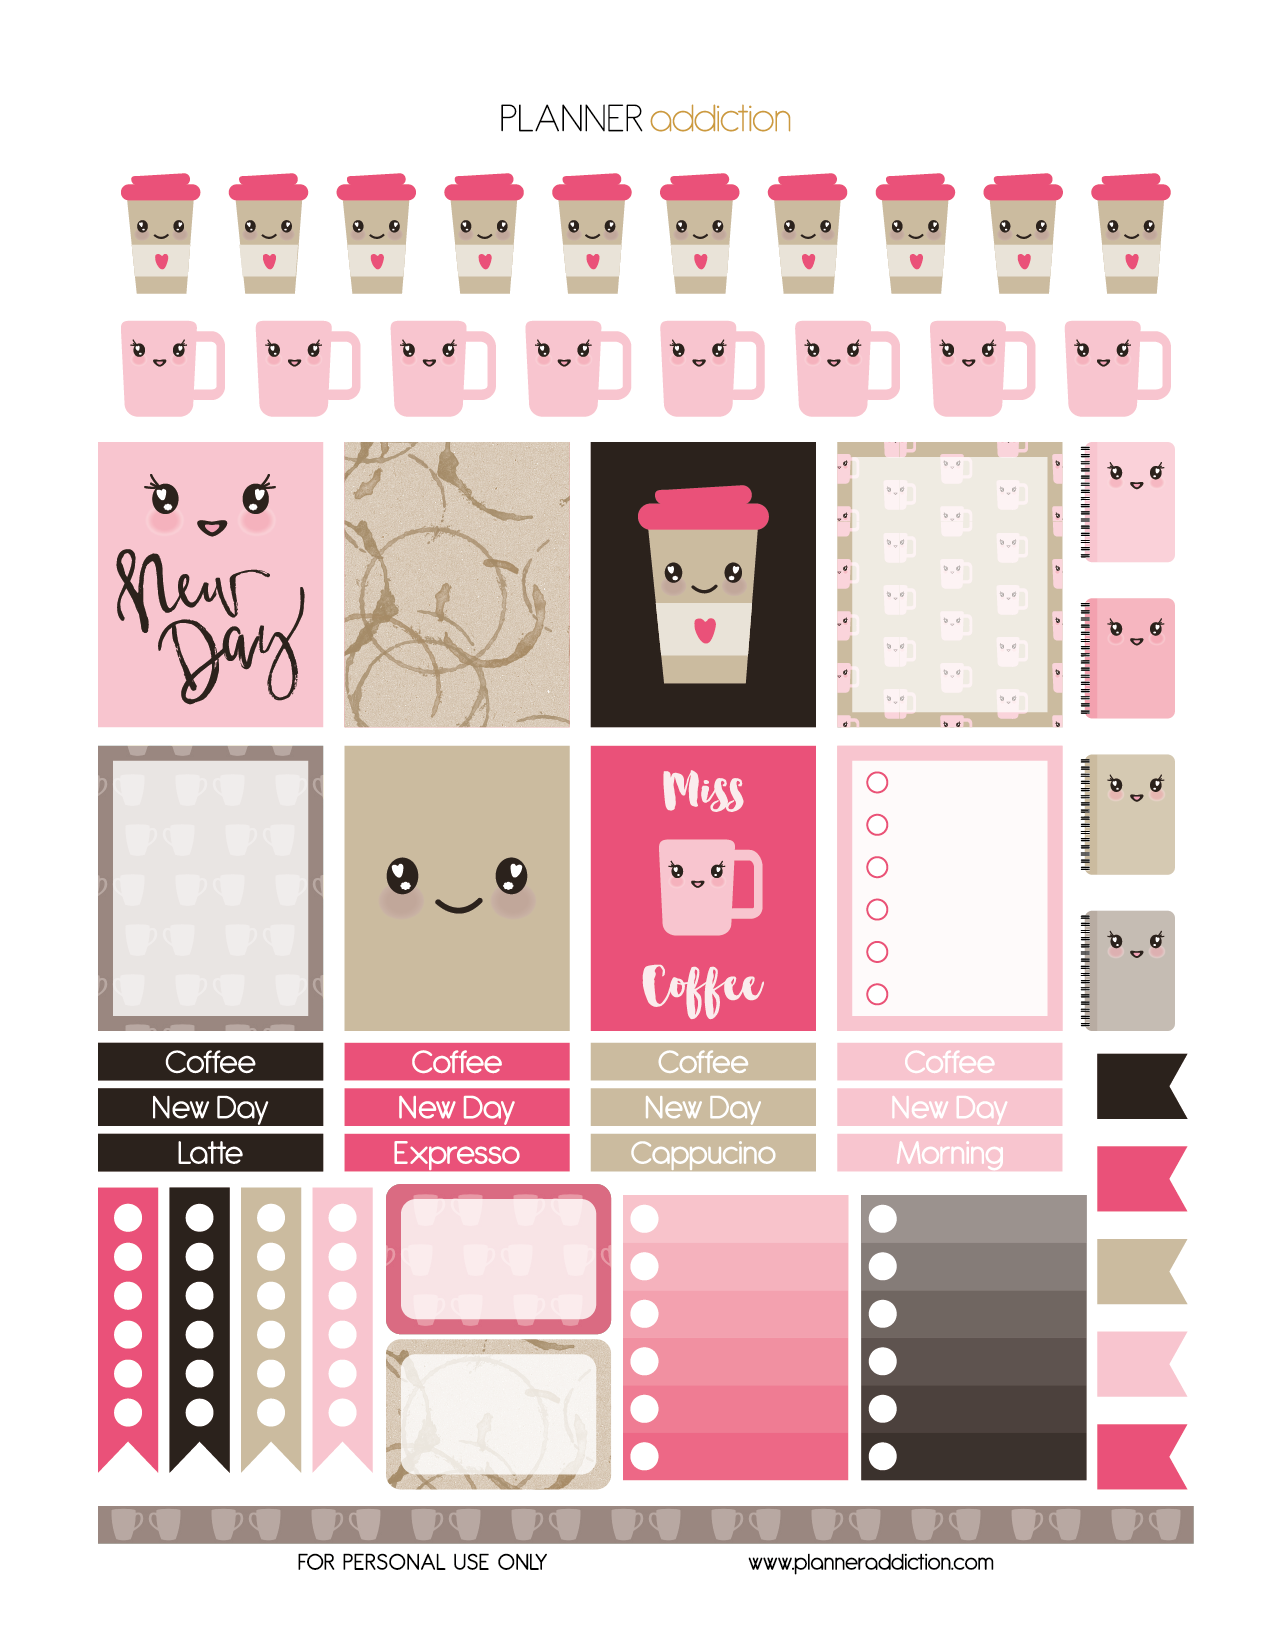 Adorable image with printable sticker sheets